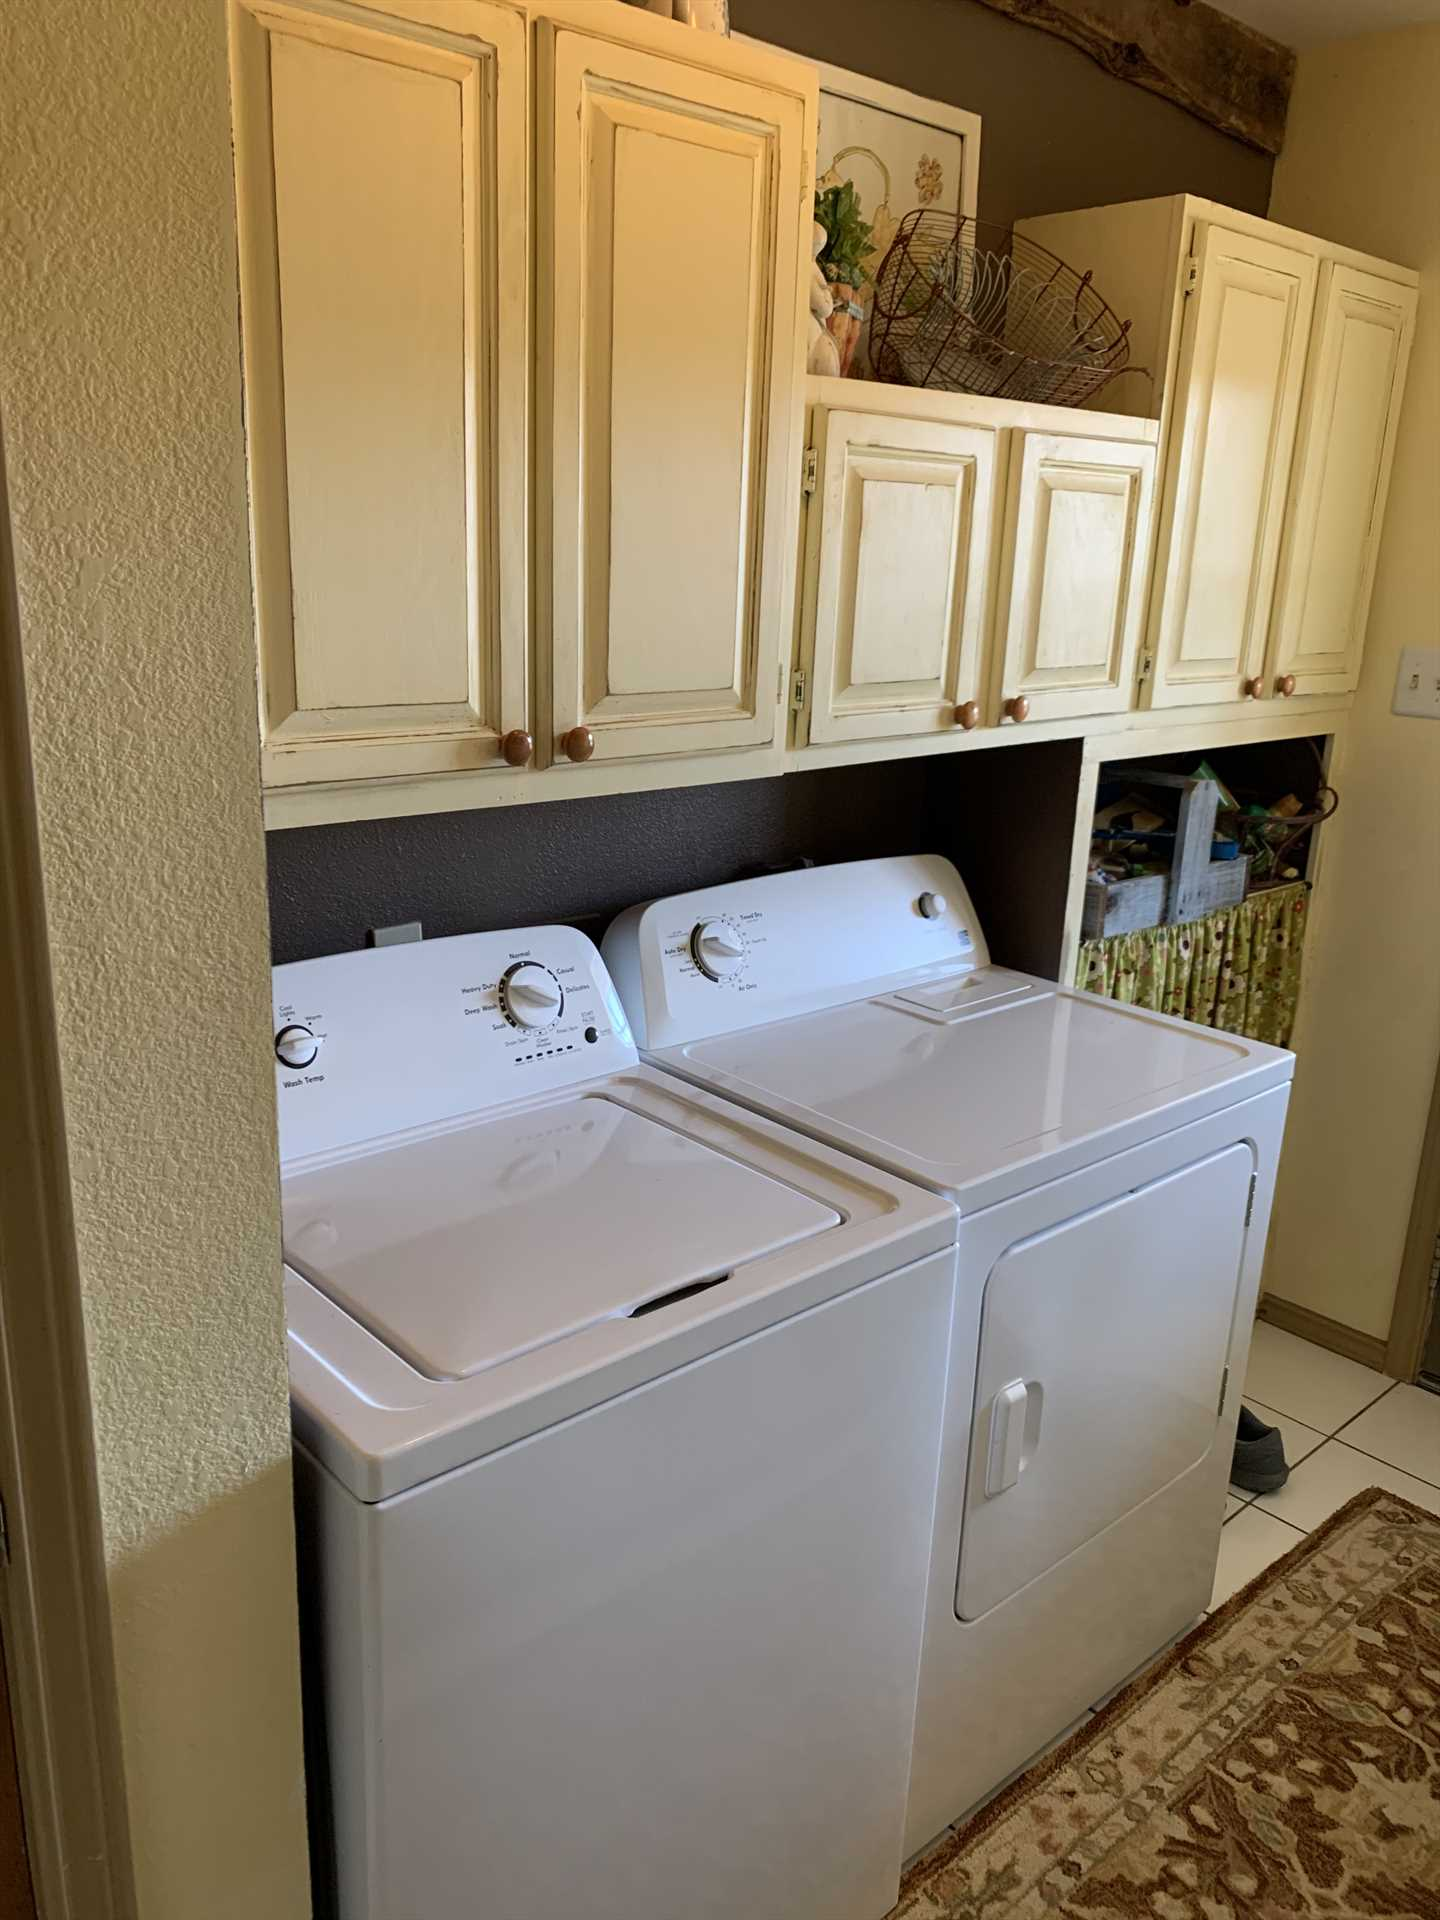 Don't fight mounds of dirty laundry after your vacation! Keep up with it all with the on-site washer and dryer.